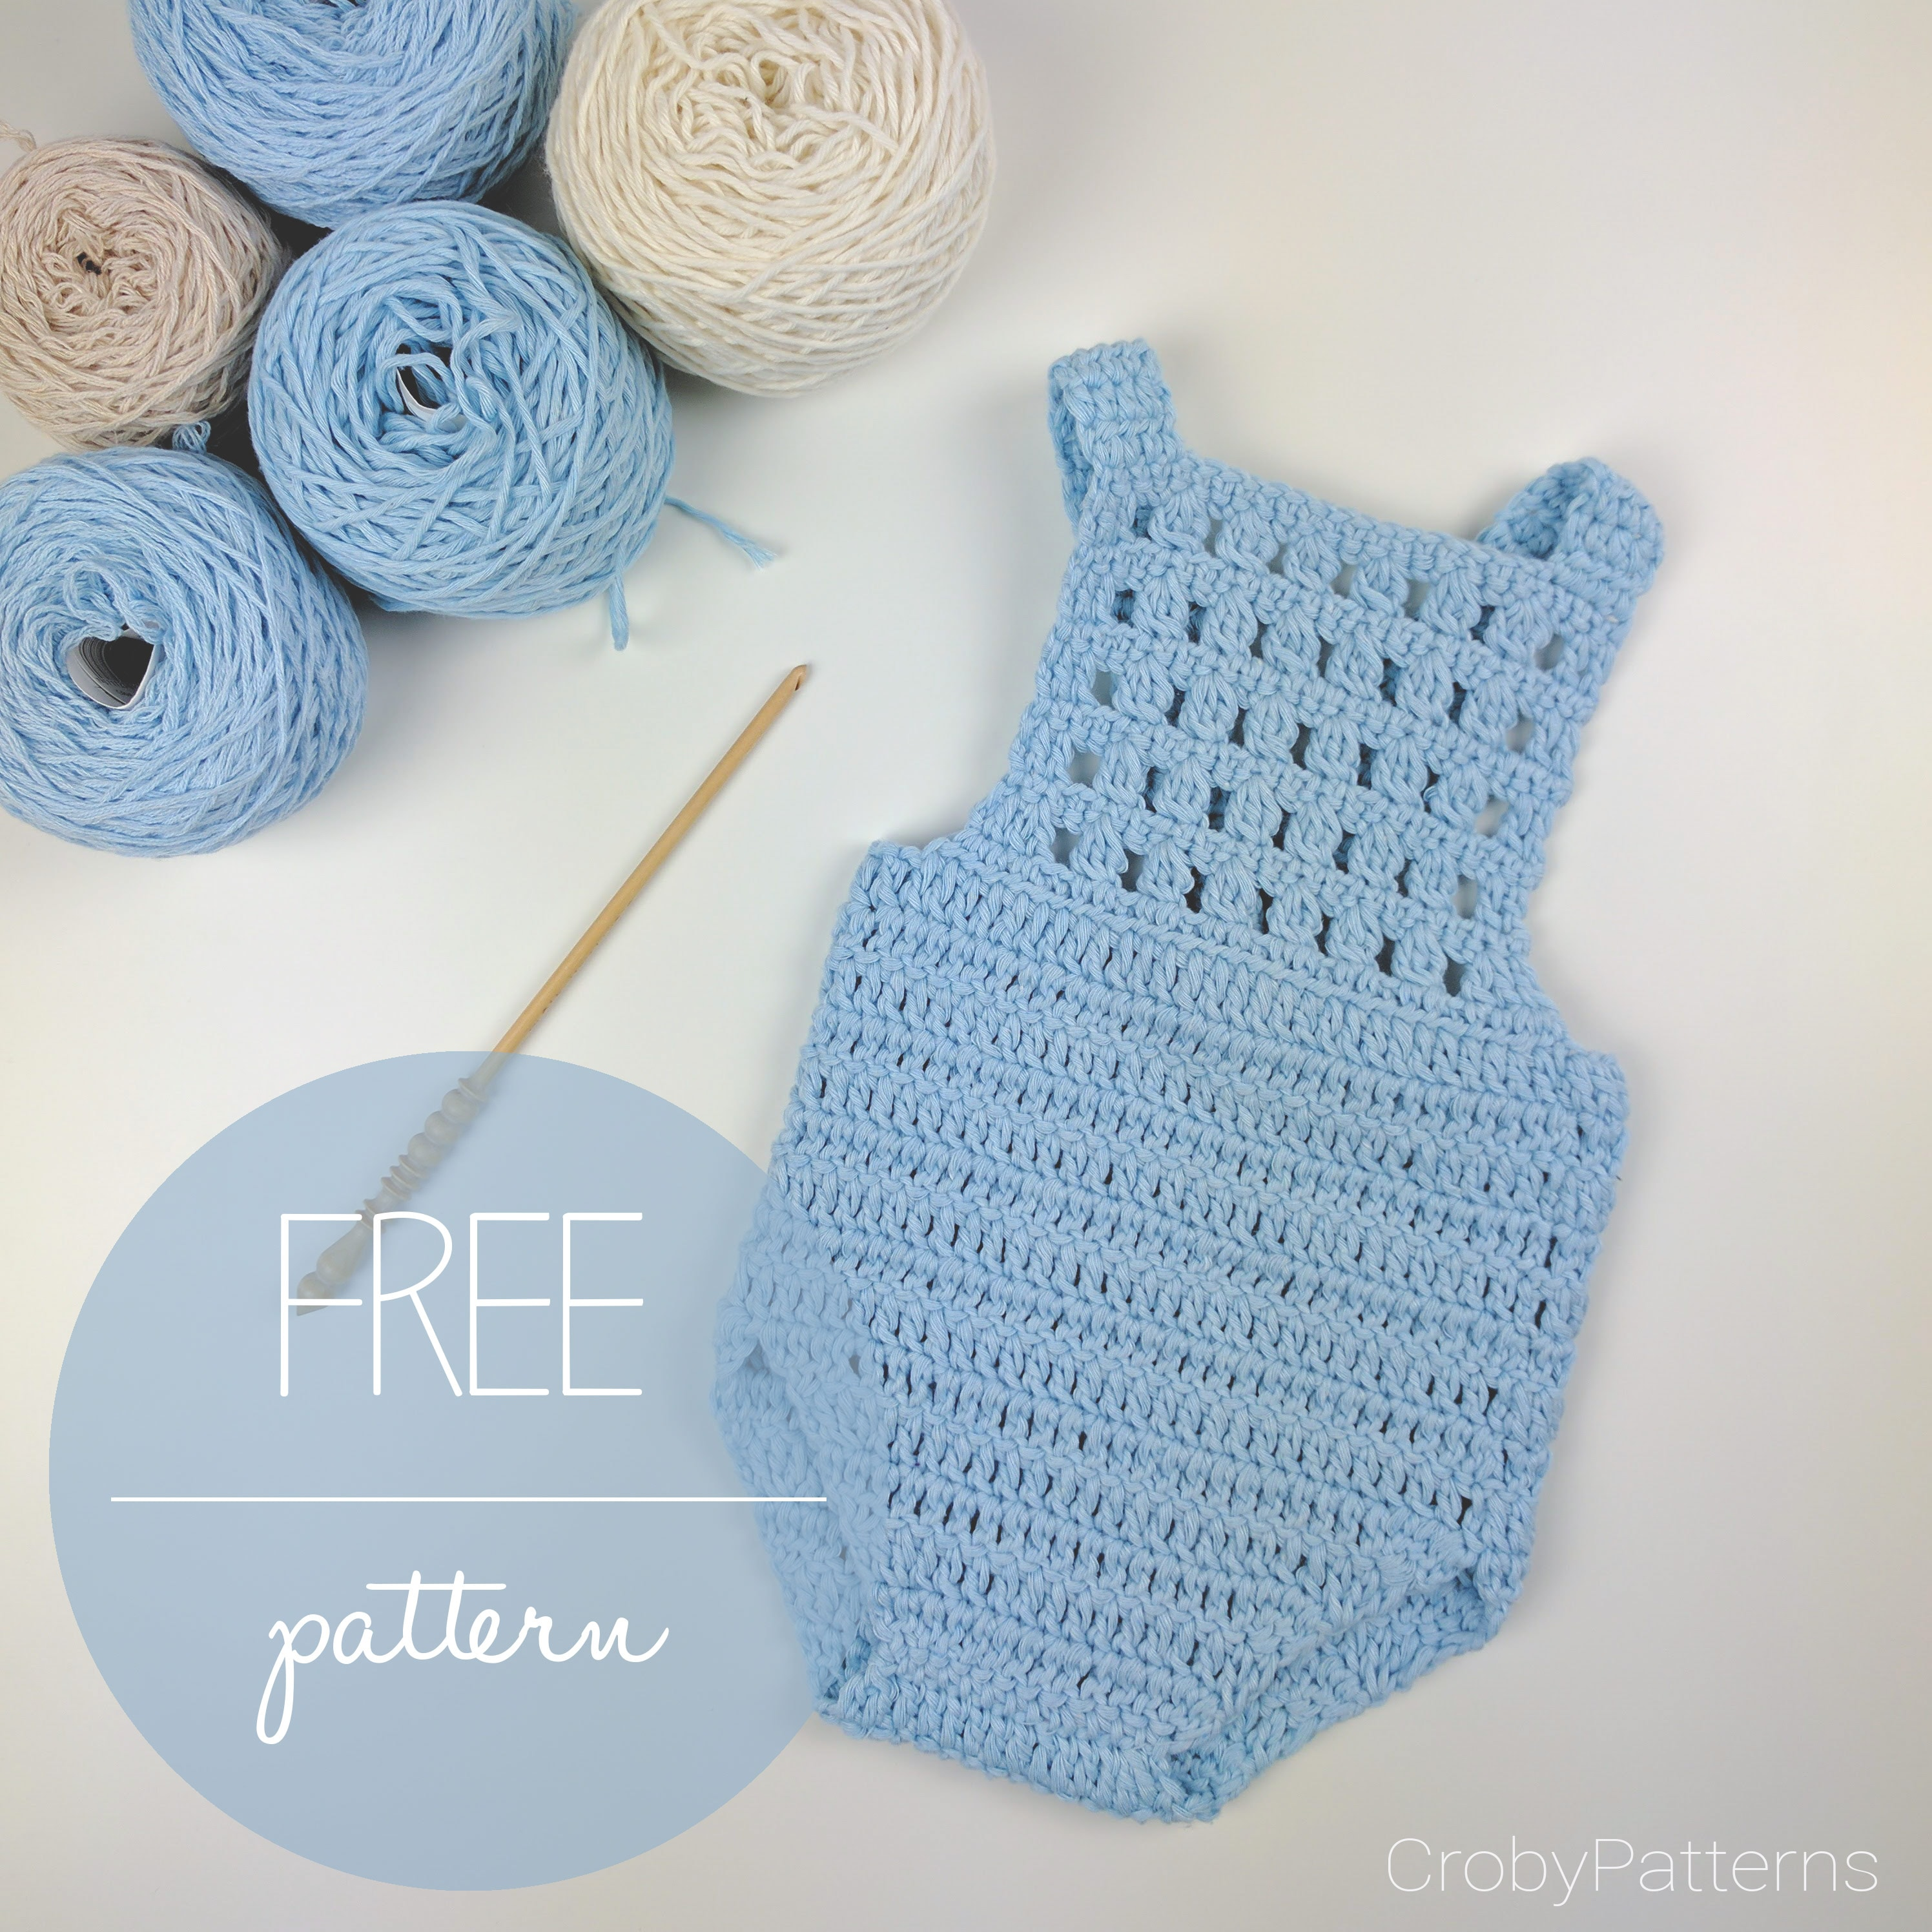 How To Make A Crochet Baby Romper - Croby Patterns